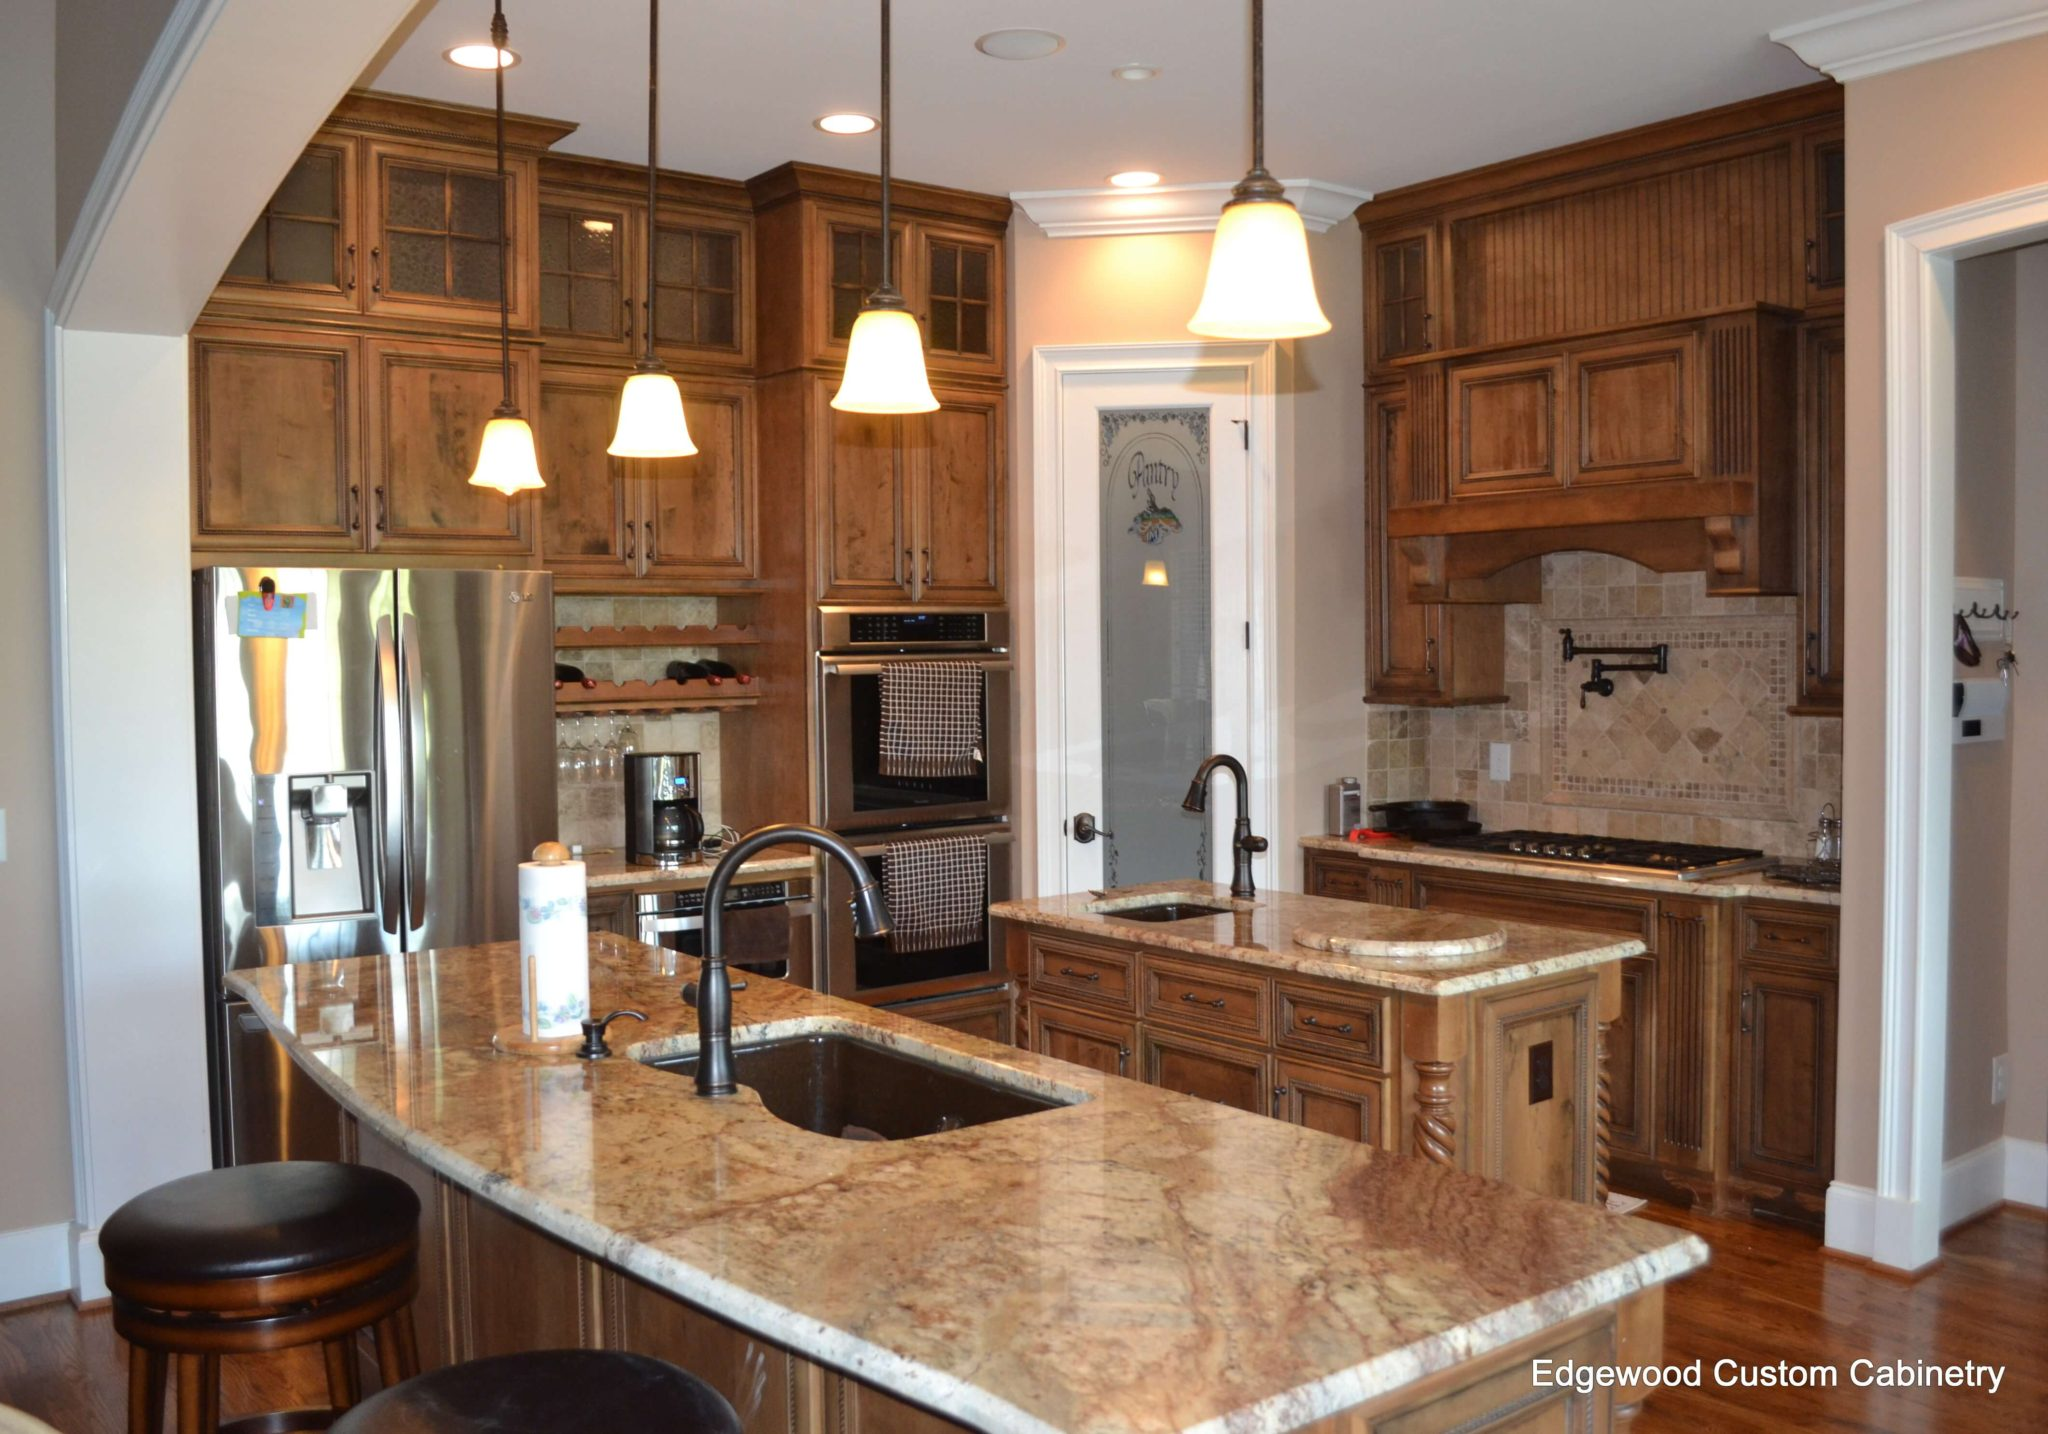 Kitchen Cabinets Islands Raleigh Nc Edgewood Cabinetry